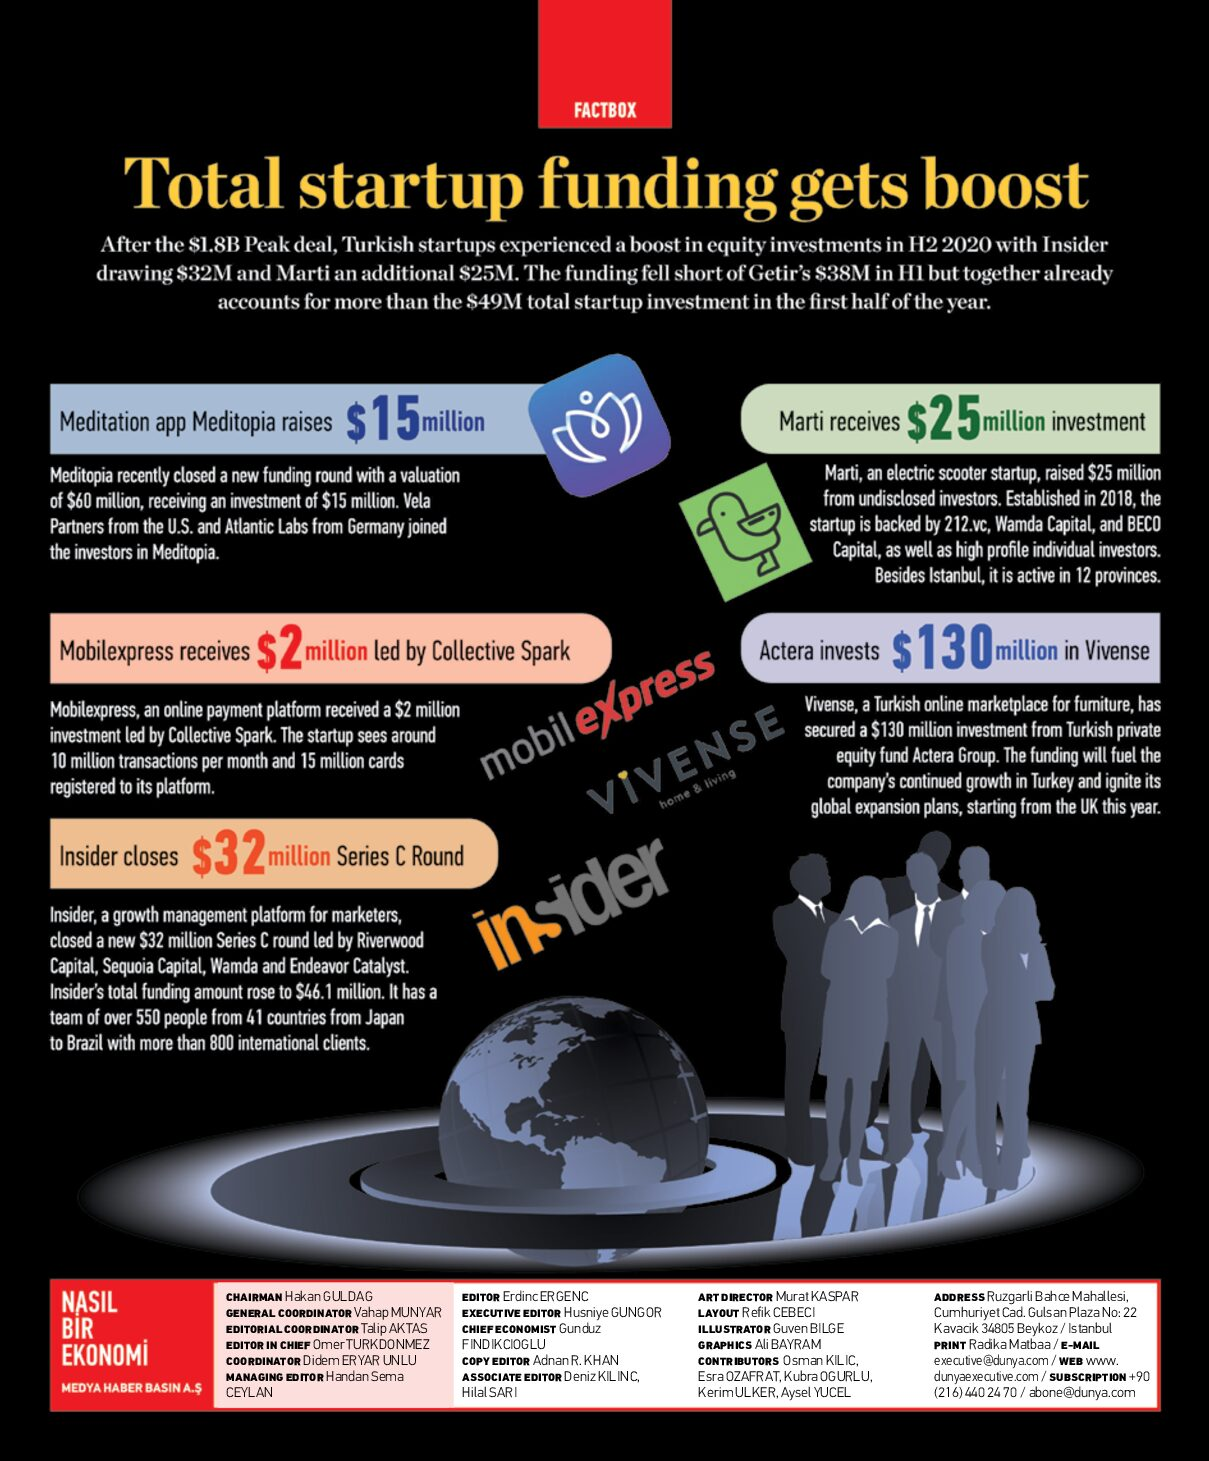 Total start-up funding gets boost